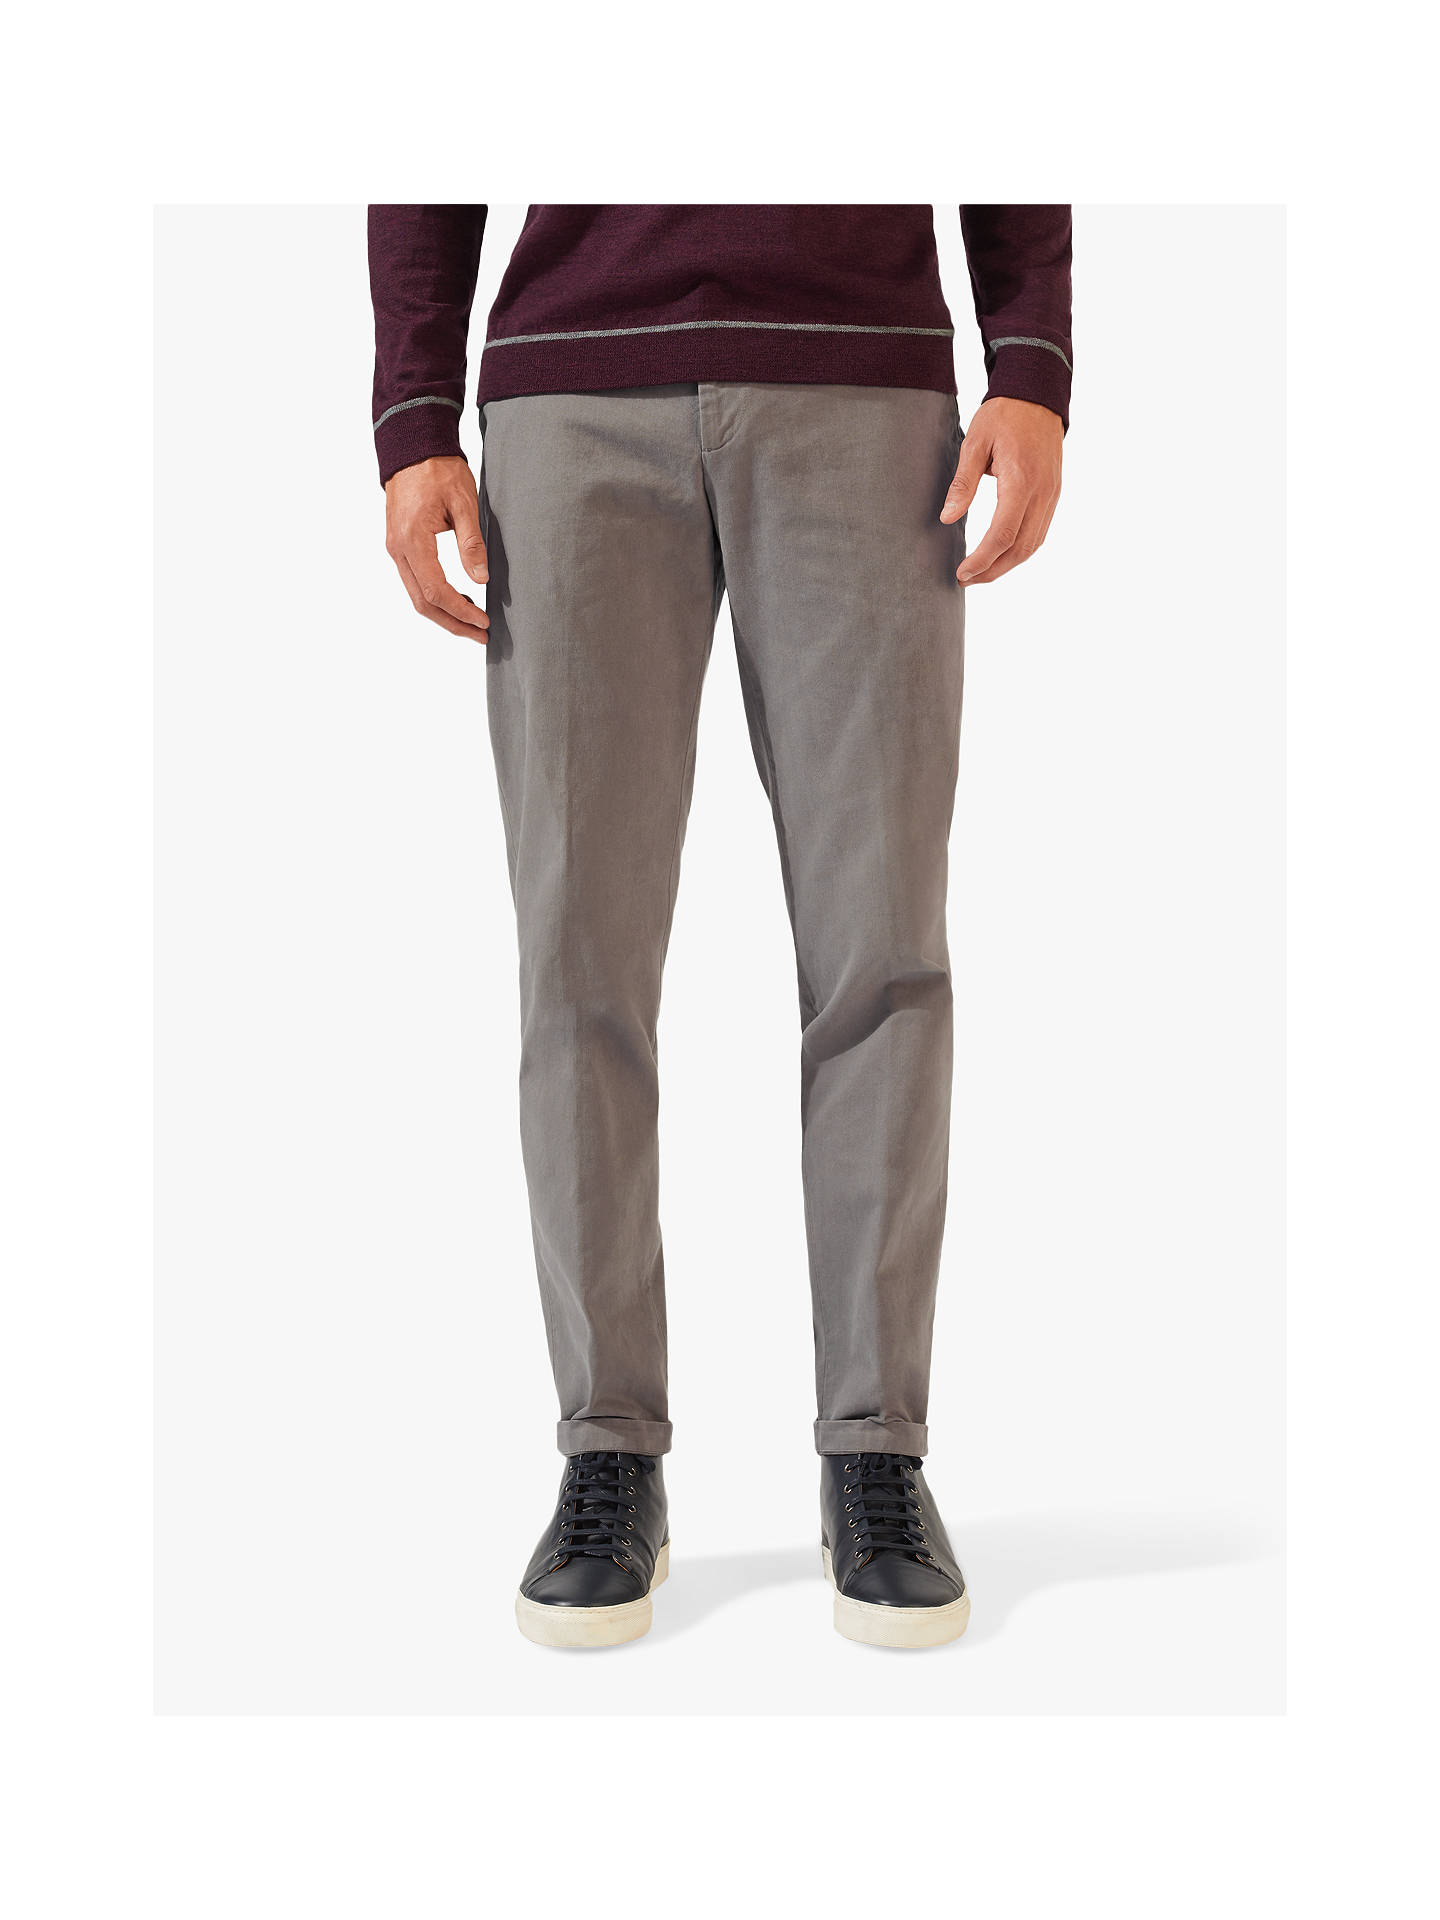 Buy Jigsaw Piper Garment Dye Chinos, Dove Grey, 28R Online at johnlewis.com